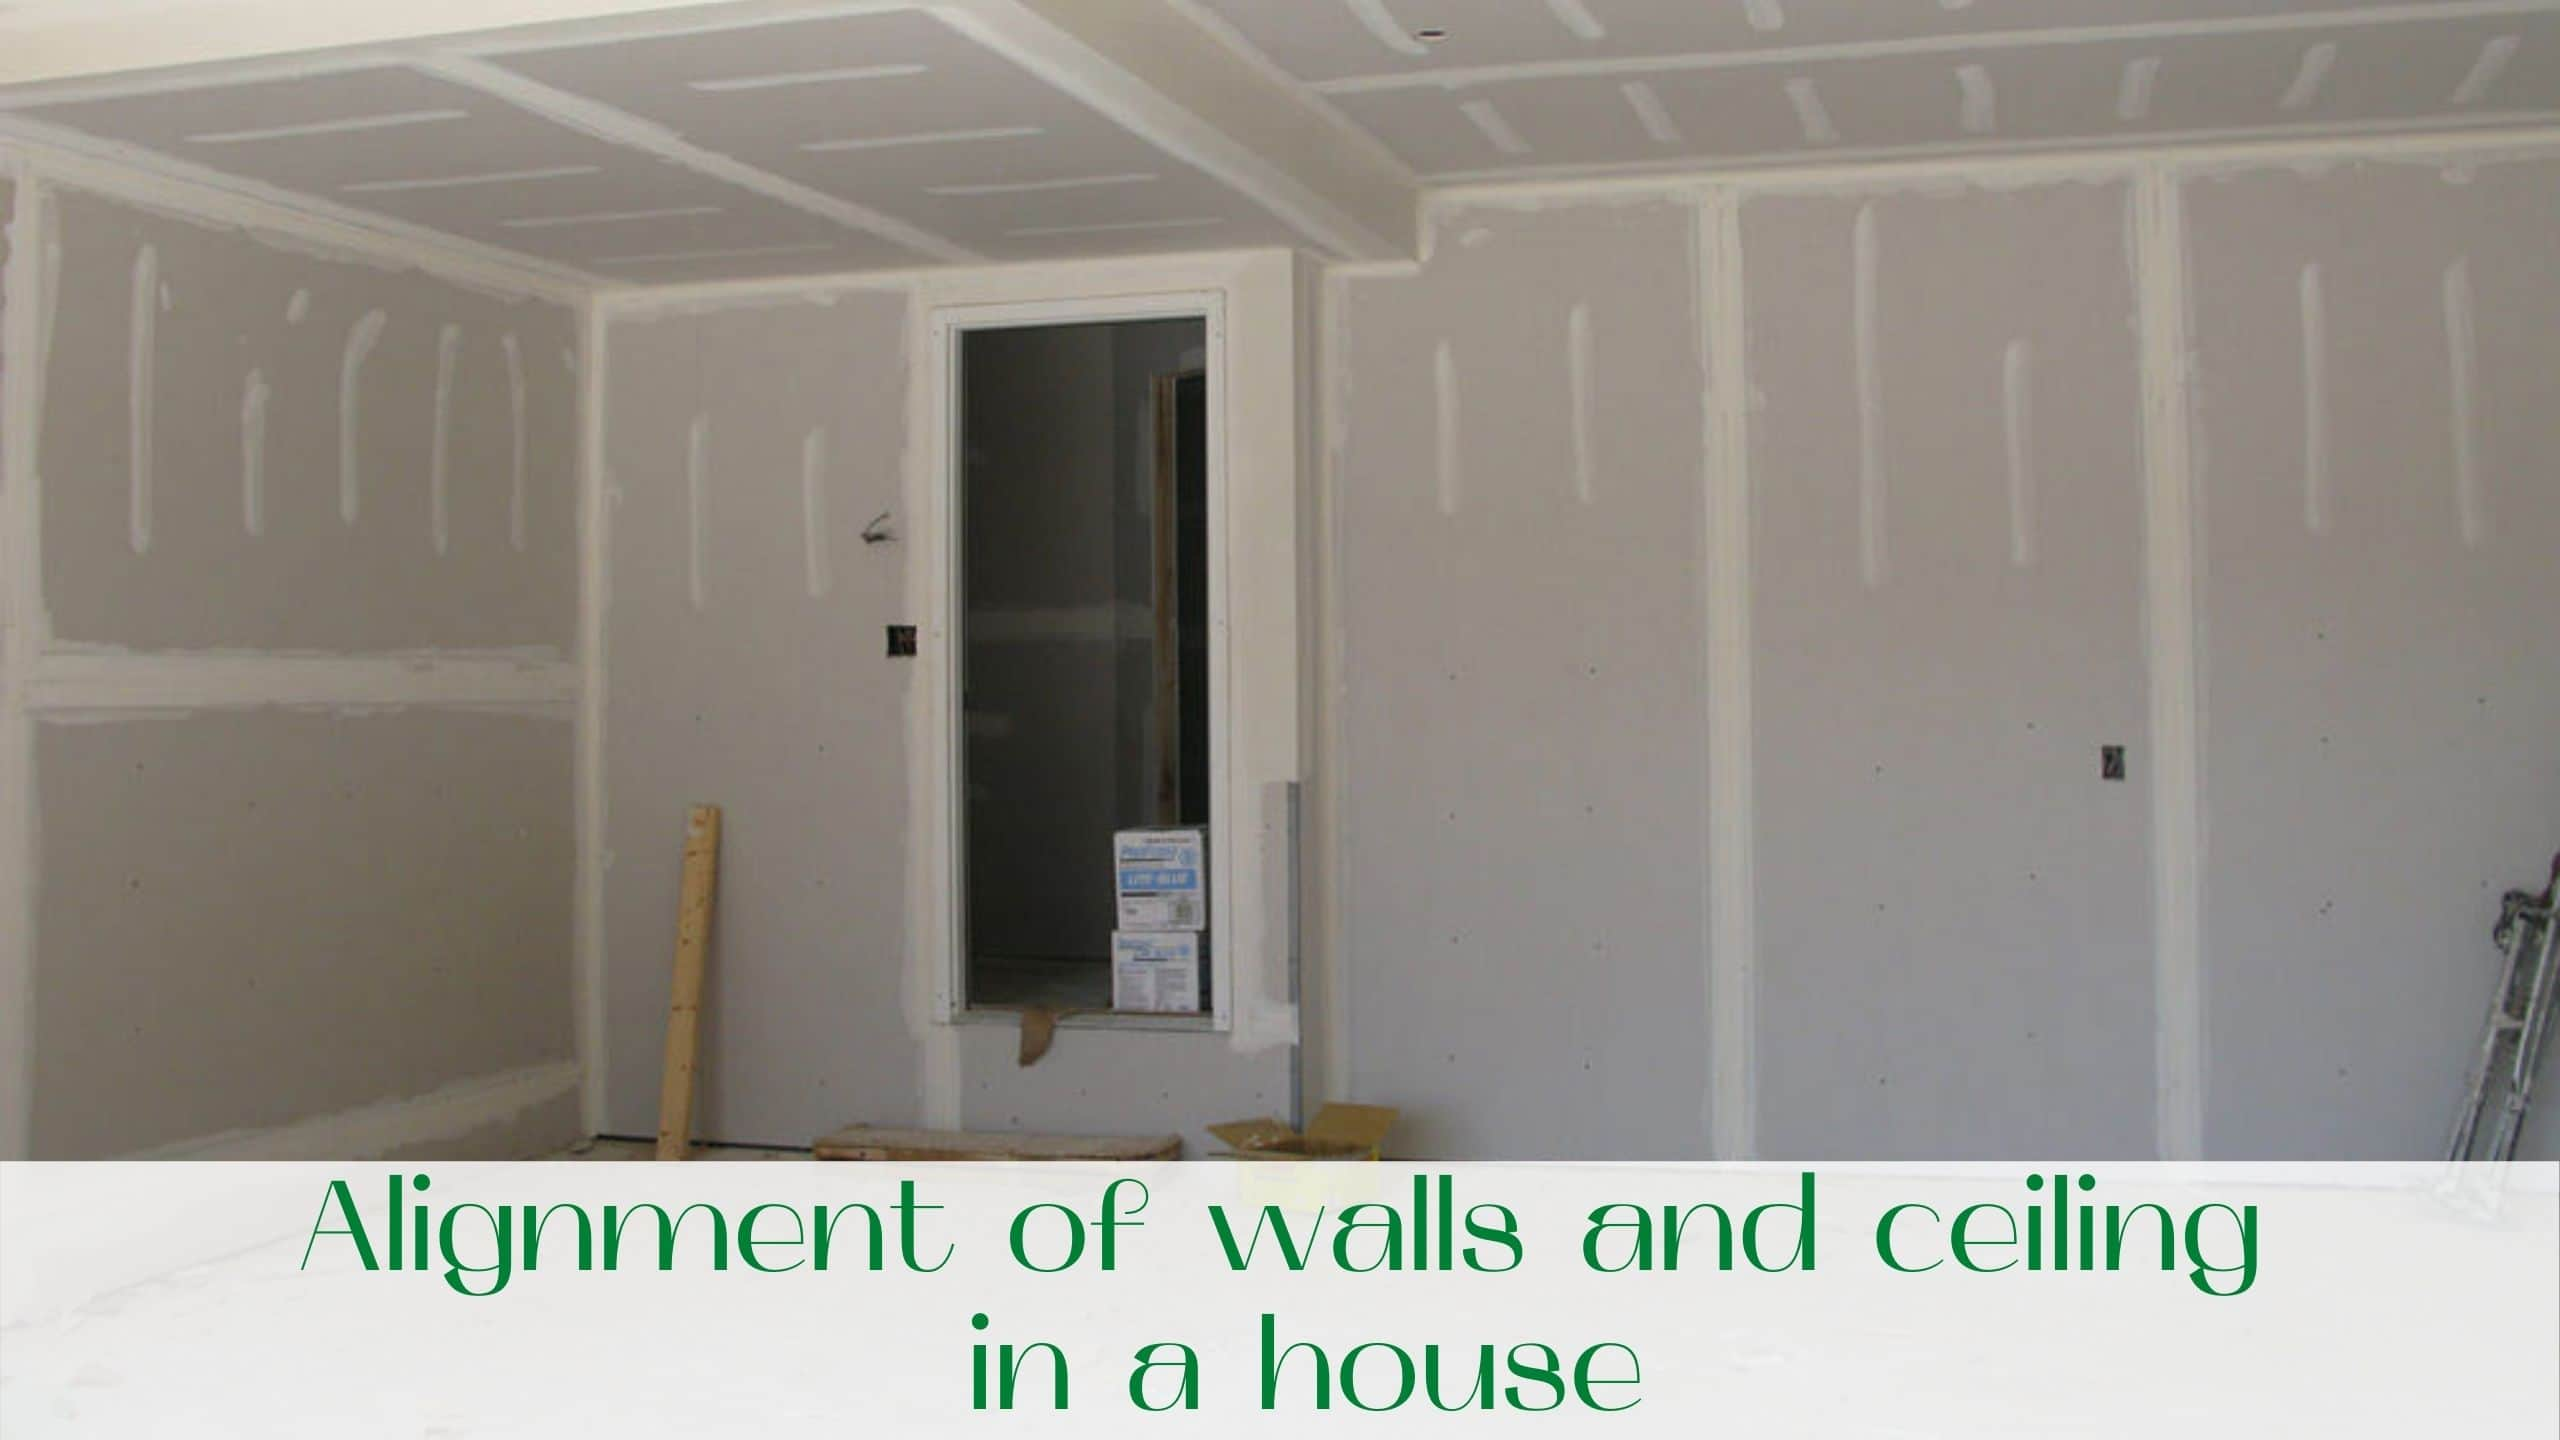 image-Alignment-of-walls-and-ceiling-in-a-house